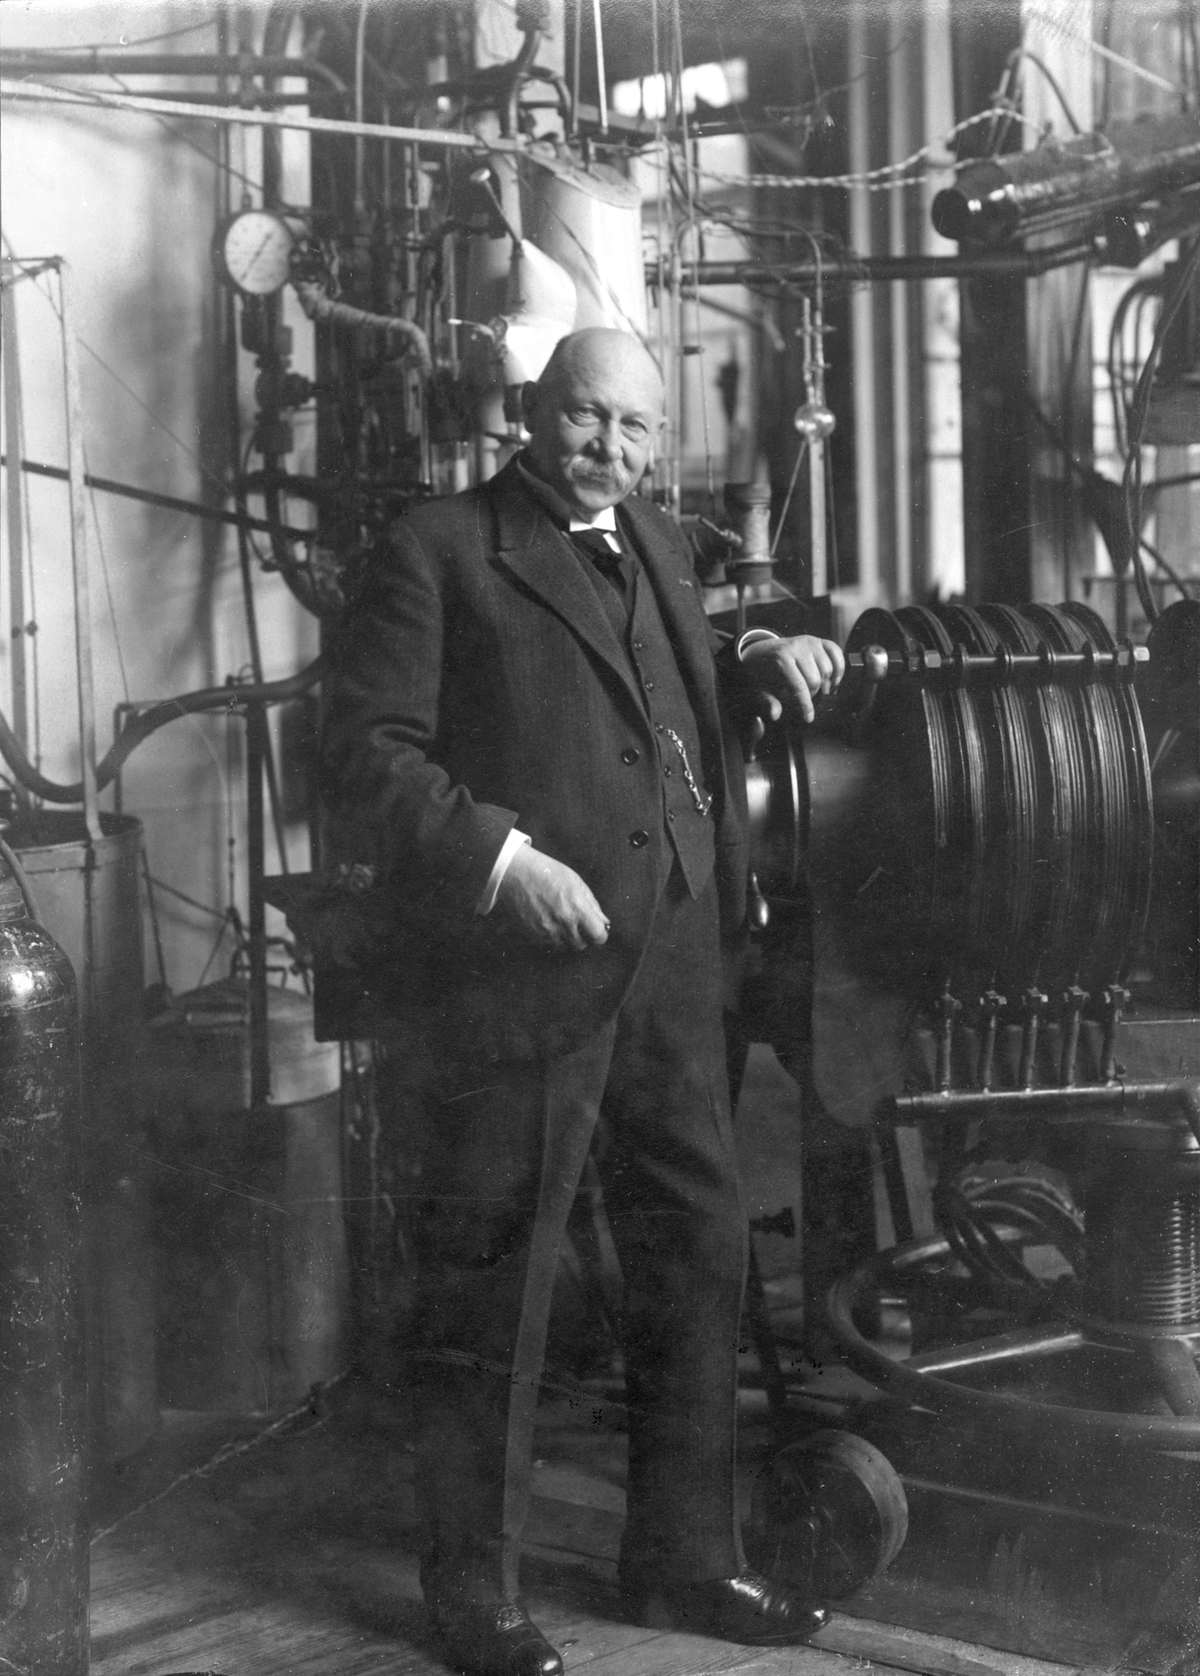 an analysis of superconductivity discovered by heike kamerlingh onnes in 1911